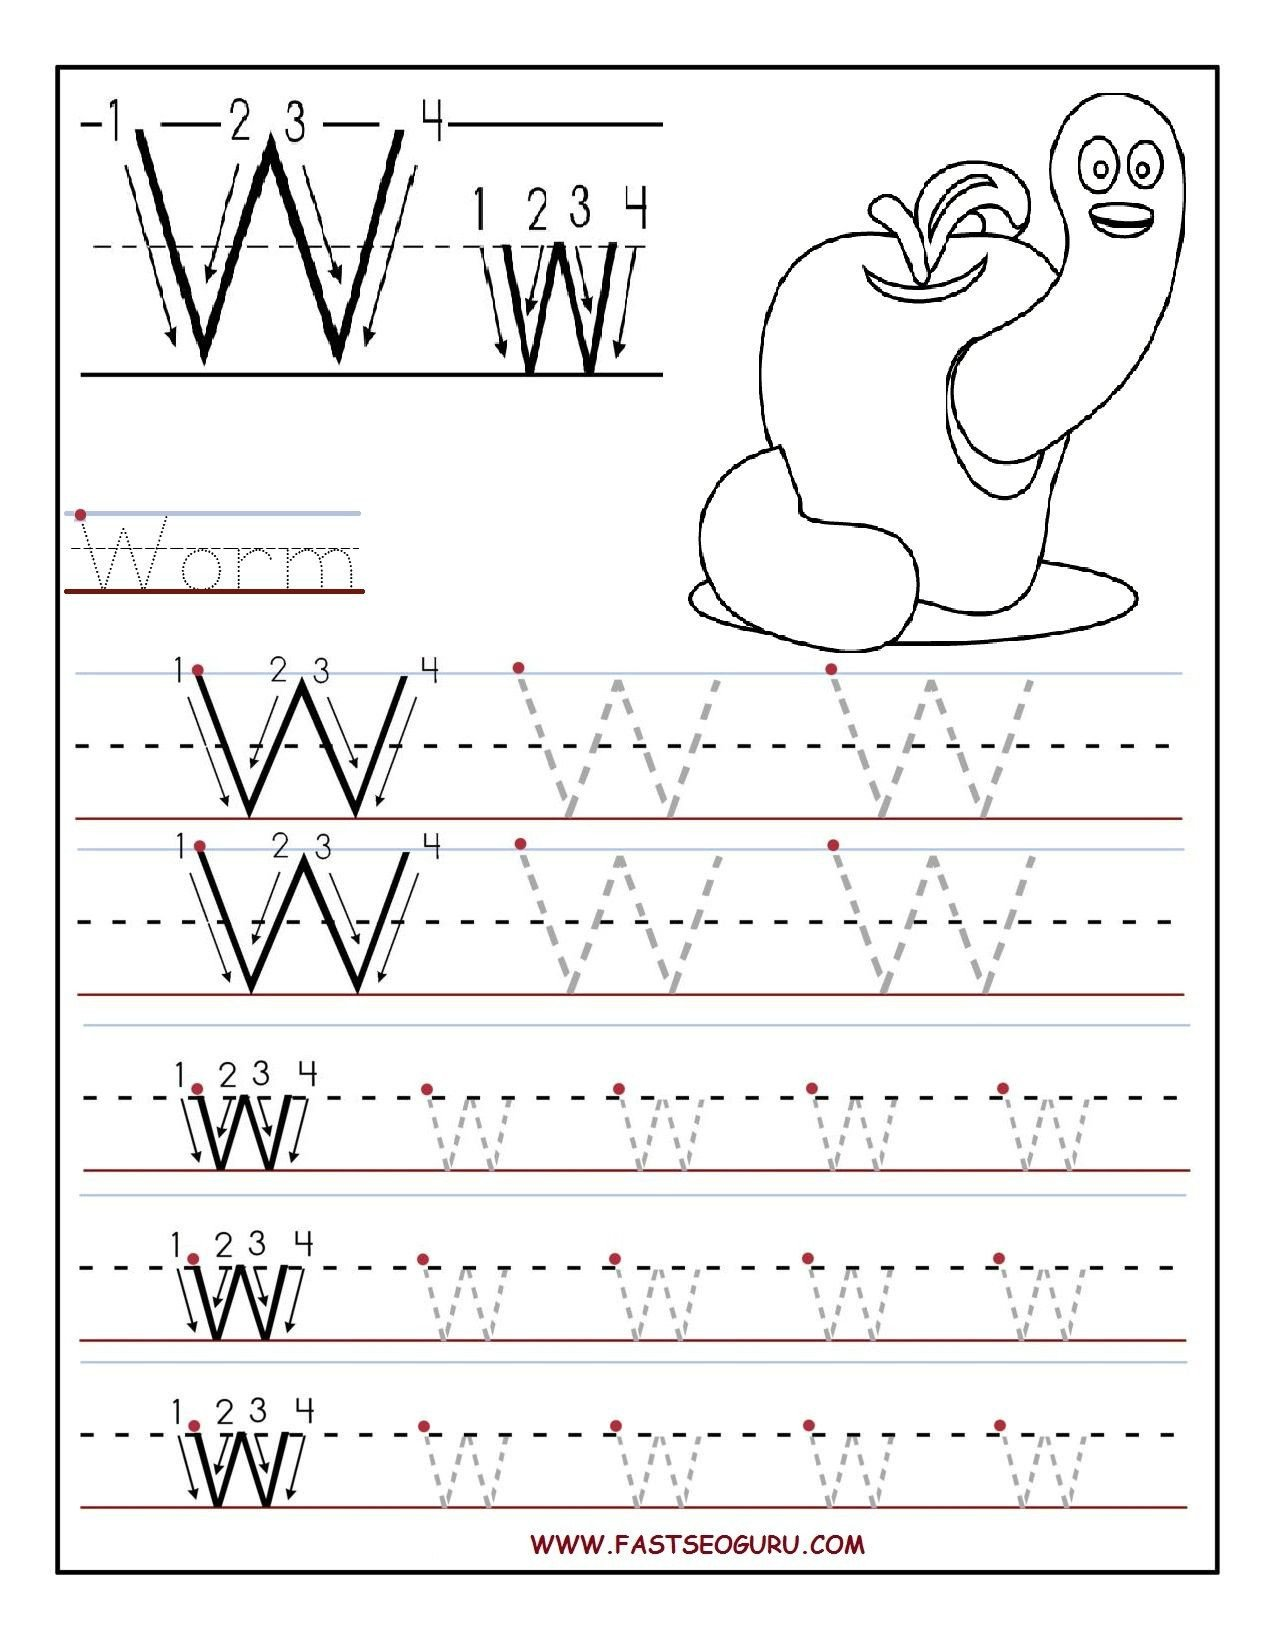 Letter W Worksheets for Preschoolers Printable Letter W Tracing Worksheets for Preschool